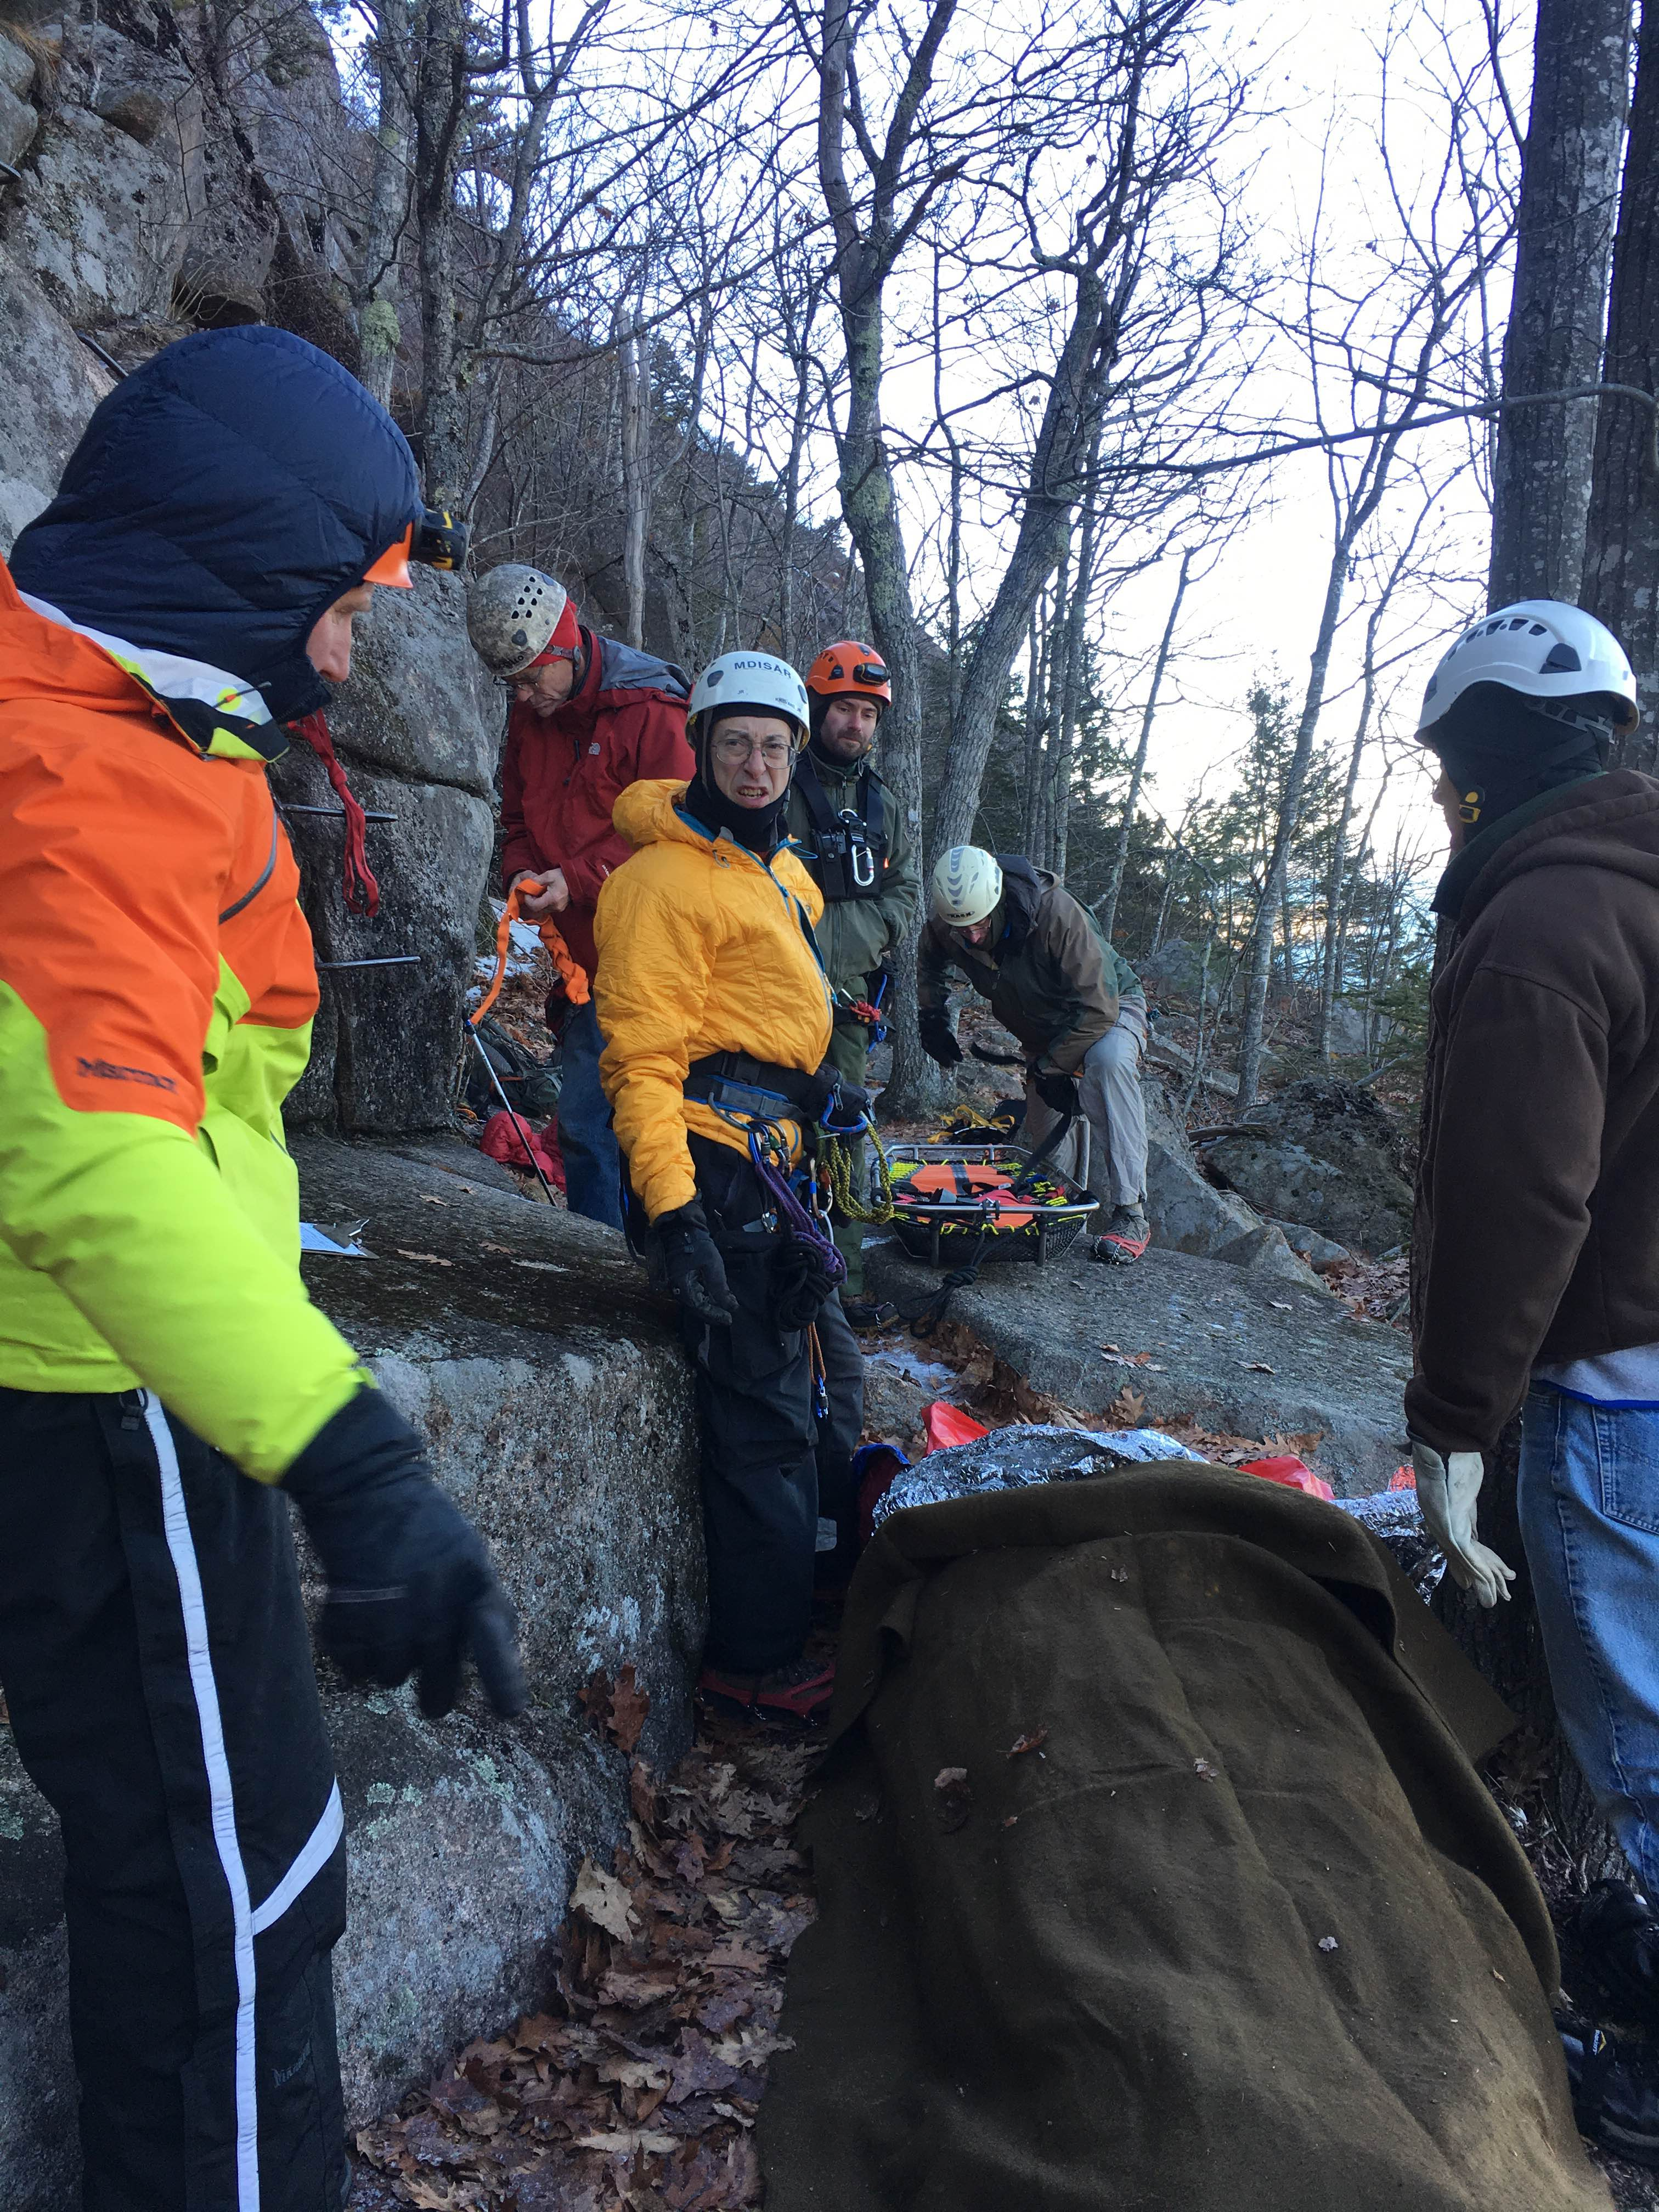 Park rangers and volunteers from Mount Desert Island Search and Rescue prepare to hoist patient by litter to the Maine Army National Guard helicopter.